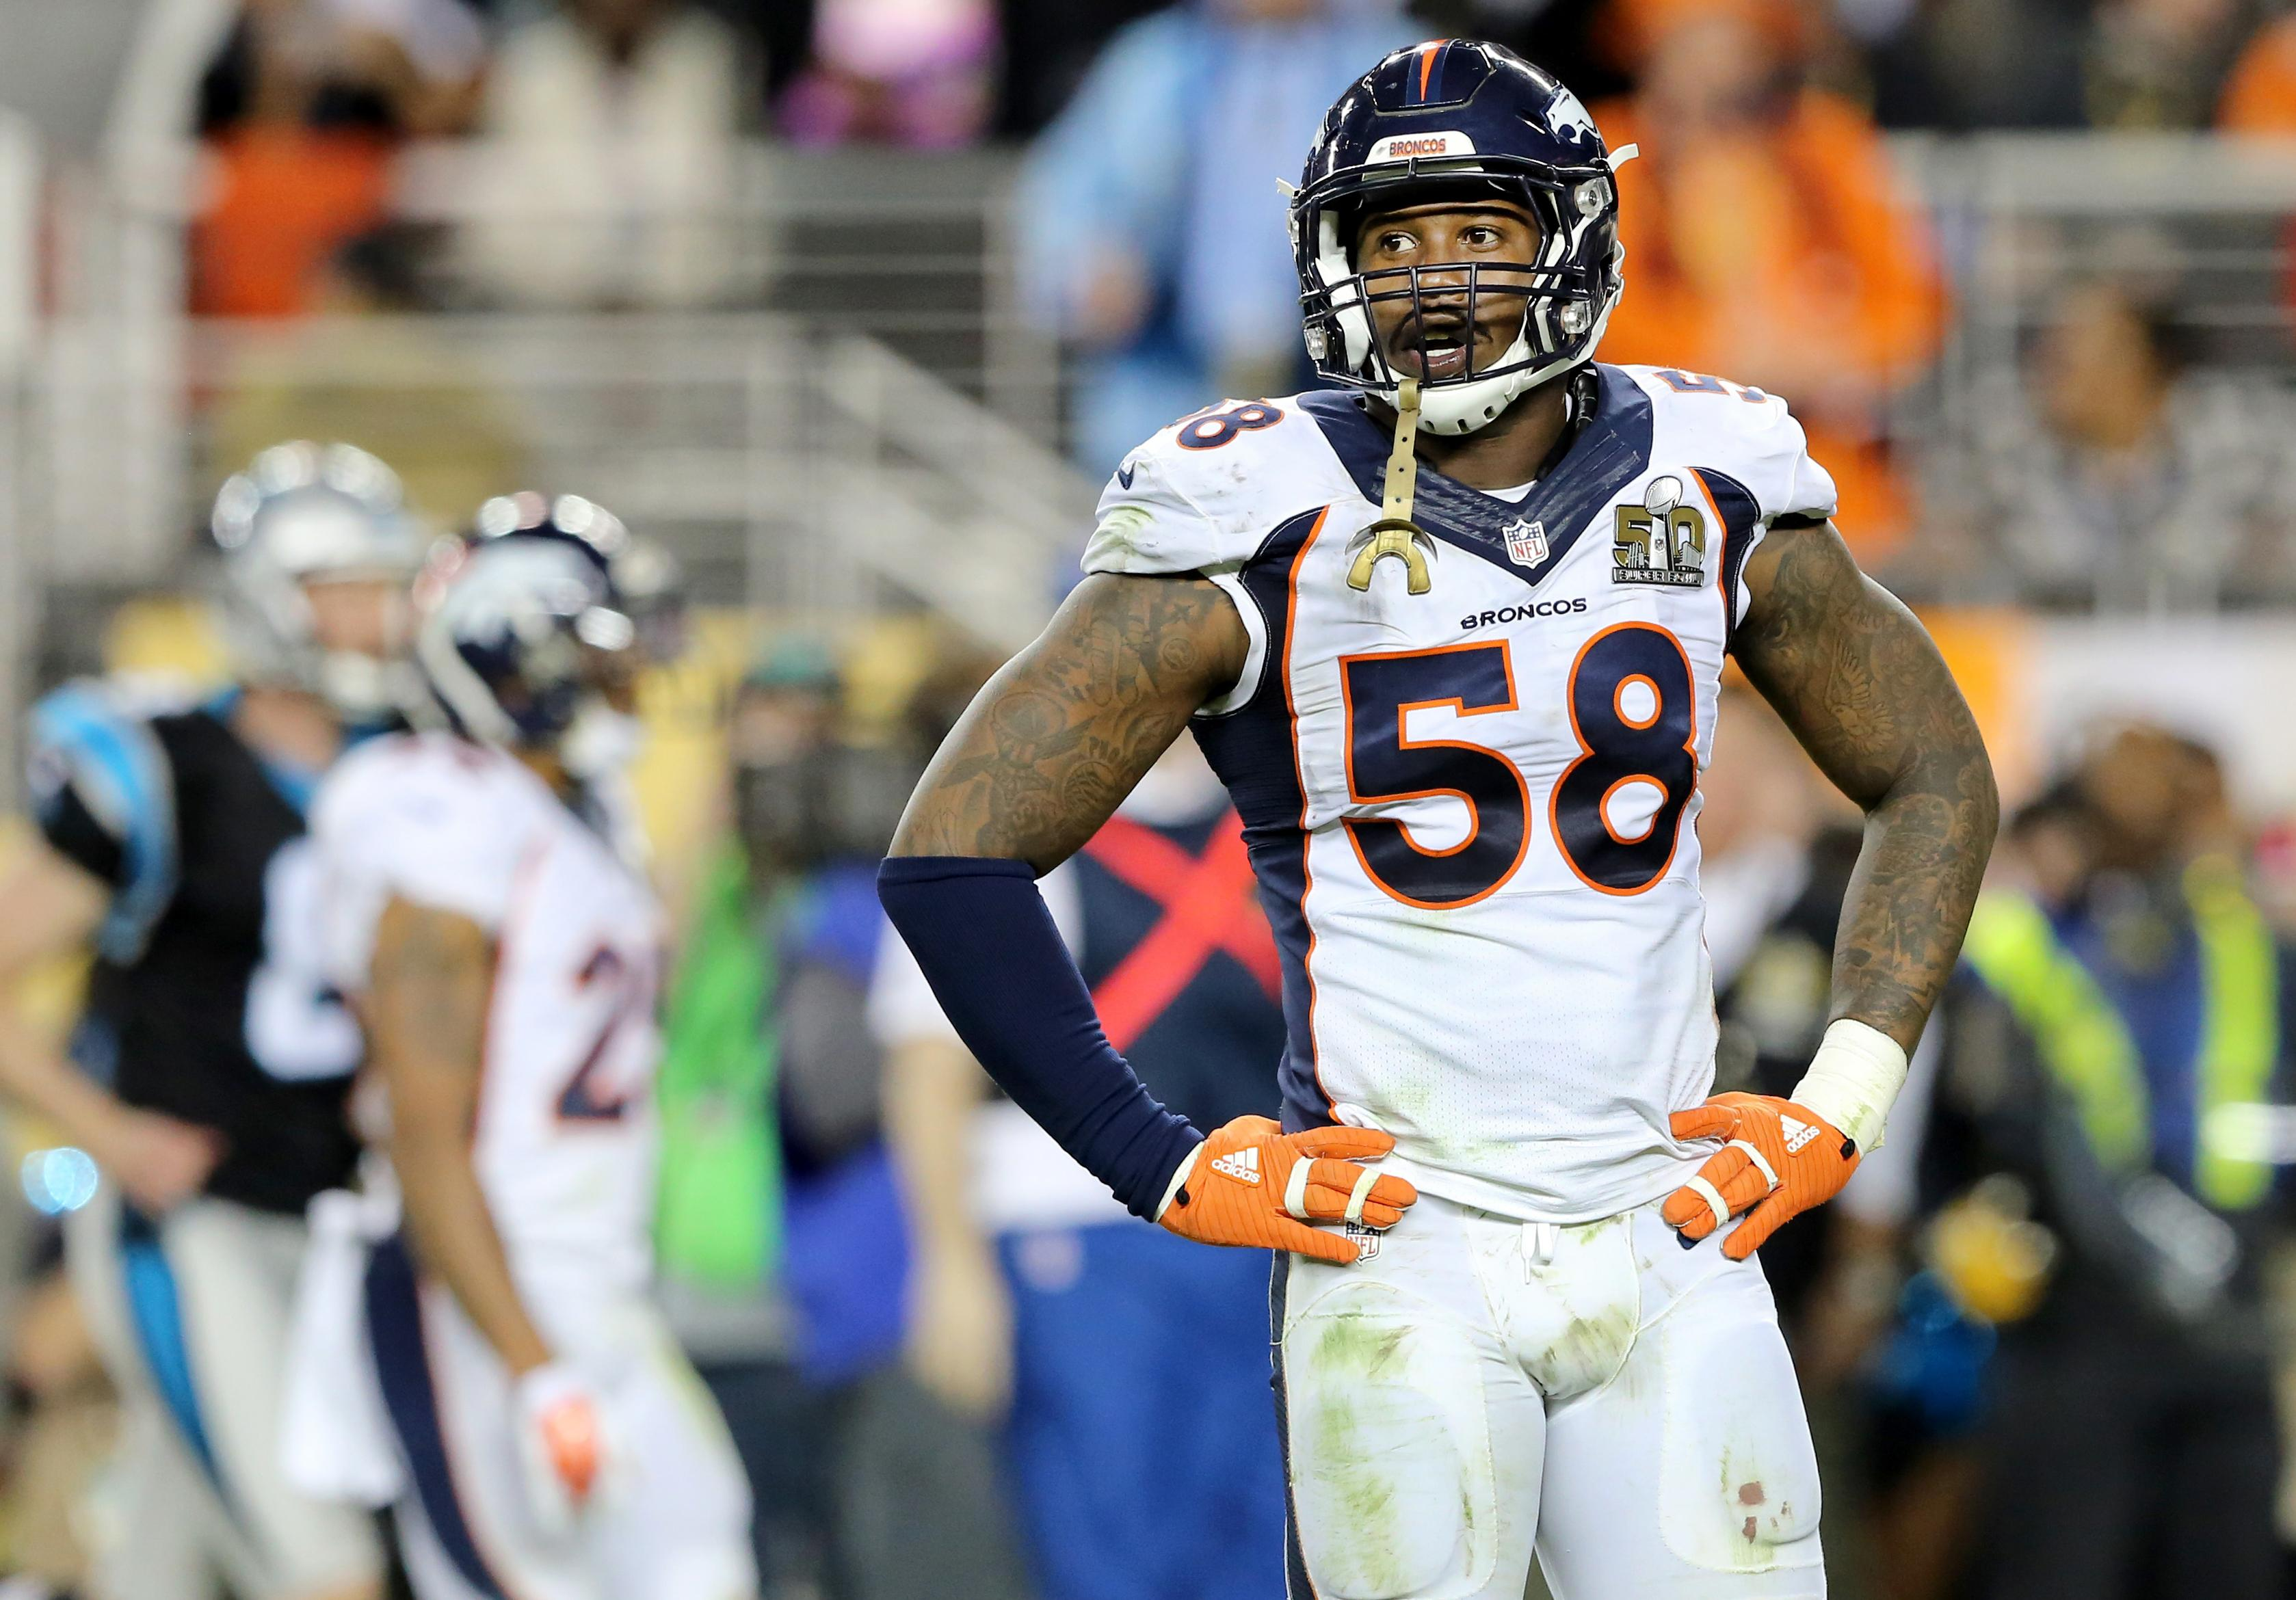 b3d13dc5af9 Super Bowl 50 MVP Von Miller is unhappy with the progress of a new contract  with